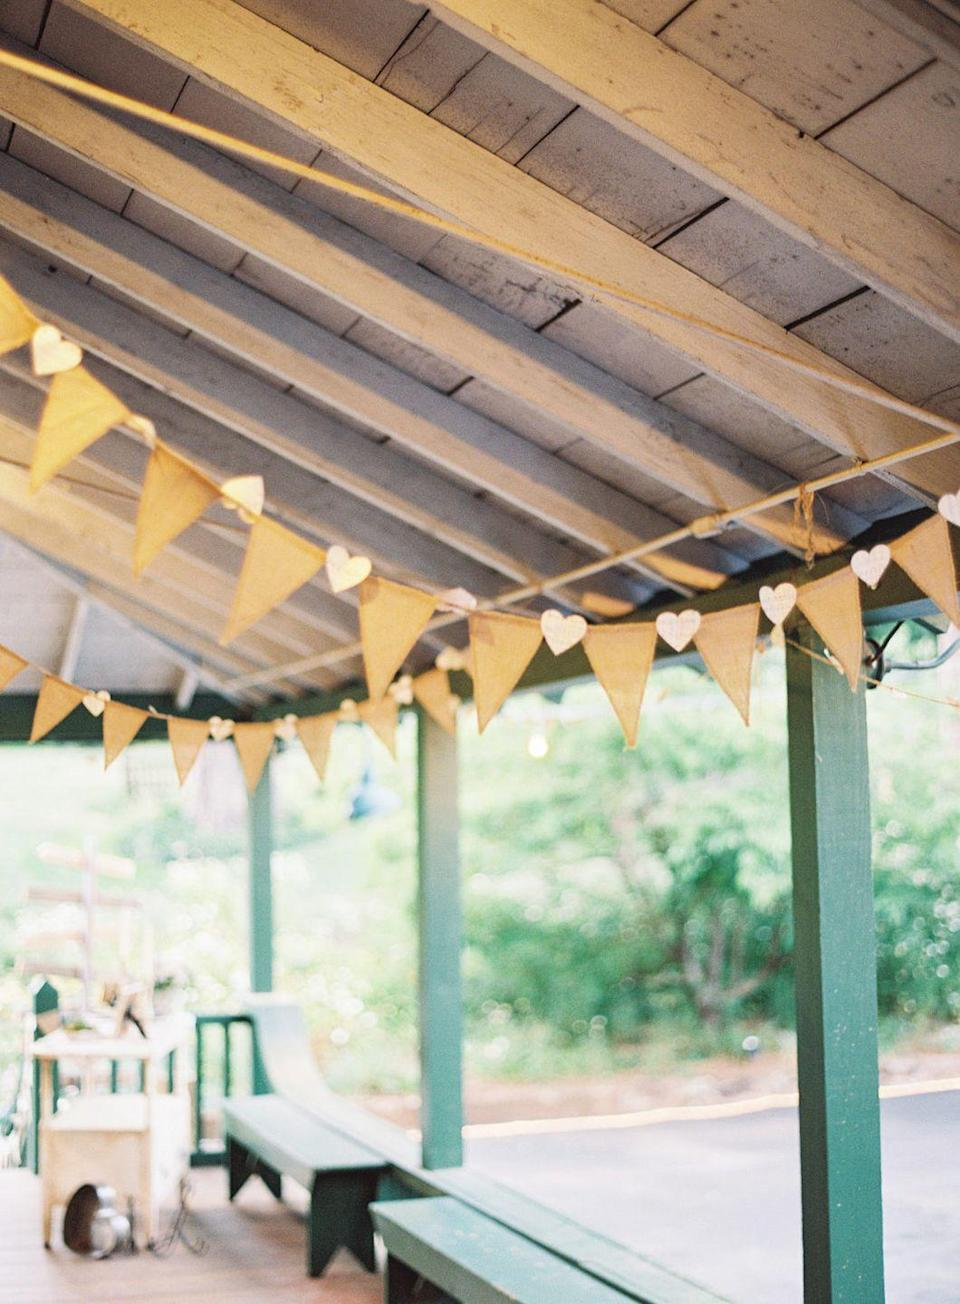 "<p>Simple garland featuring burlap flags and cut-out hearts doesn't feel overly frilly. </p><p><a href=""https://www.stylemepretty.com/2016/09/15/romantic-outdoor-state-park-wedding-in-california/"" rel=""nofollow noopener"" target=""_blank"" data-ylk=""slk:Via Style Me Pretty"" class=""link rapid-noclick-resp"">Via <em>Style Me Pretty</em></a></p><p><a class=""link rapid-noclick-resp"" href=""https://go.redirectingat.com?id=74968X1596630&url=https%3A%2F%2Fwww.etsy.com%2Flisting%2F662603322%2Fheart-felt-garland-all-pink-hearts%3Fga_order%3Dmost_relevant%26ga_search_type%3Dall%26ga_view_type%3Dgallery%26ga_search_query%3Dheart%2Bgarlands%26ref%3Dsr_gallery-1-31%26organic_search_click%3D1%26bes%3D1&sref=https%3A%2F%2Fwww.elledecor.com%2Flife-culture%2Ffun-at-home%2Fg2387%2Fvalentines-day-decor%2F"" rel=""nofollow noopener"" target=""_blank"" data-ylk=""slk:GET THE LOOK"">GET THE LOOK</a><em><br>Pink Heart Felt Garland, Etsy, $18</em></p>"